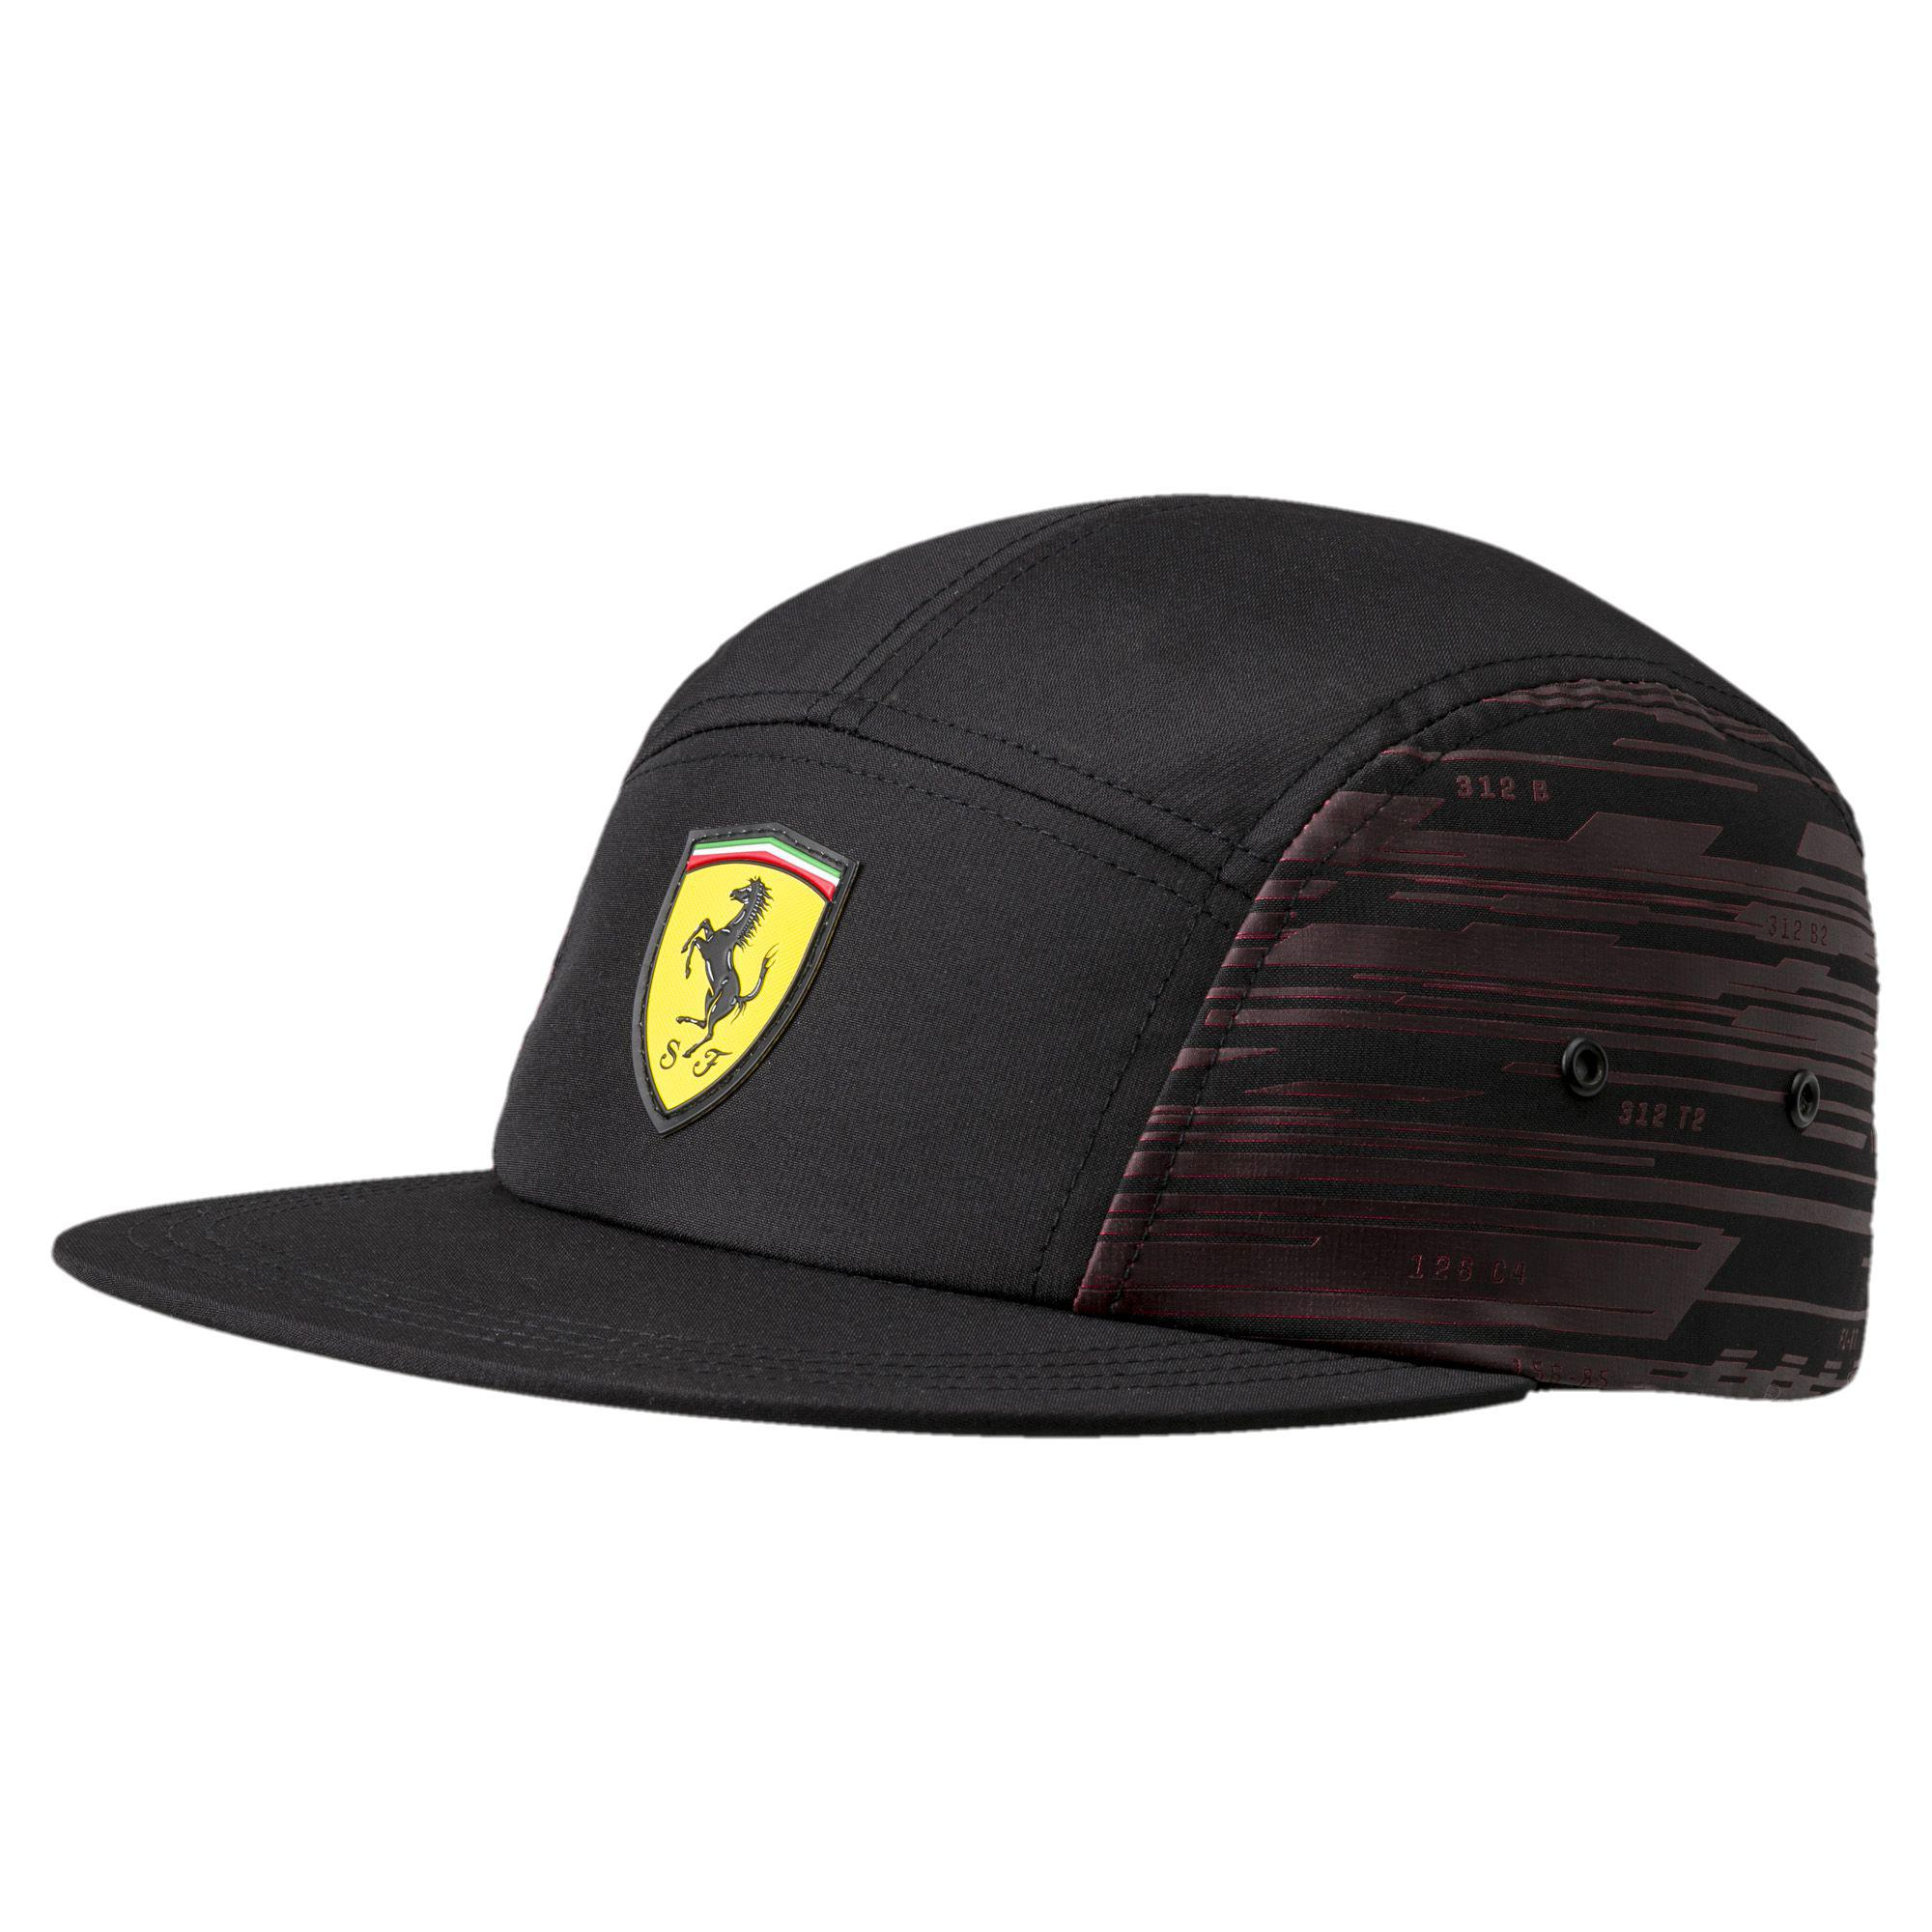 martin cap winning aston with size sentinel black itm ferrari back adult gold racing team one special edition